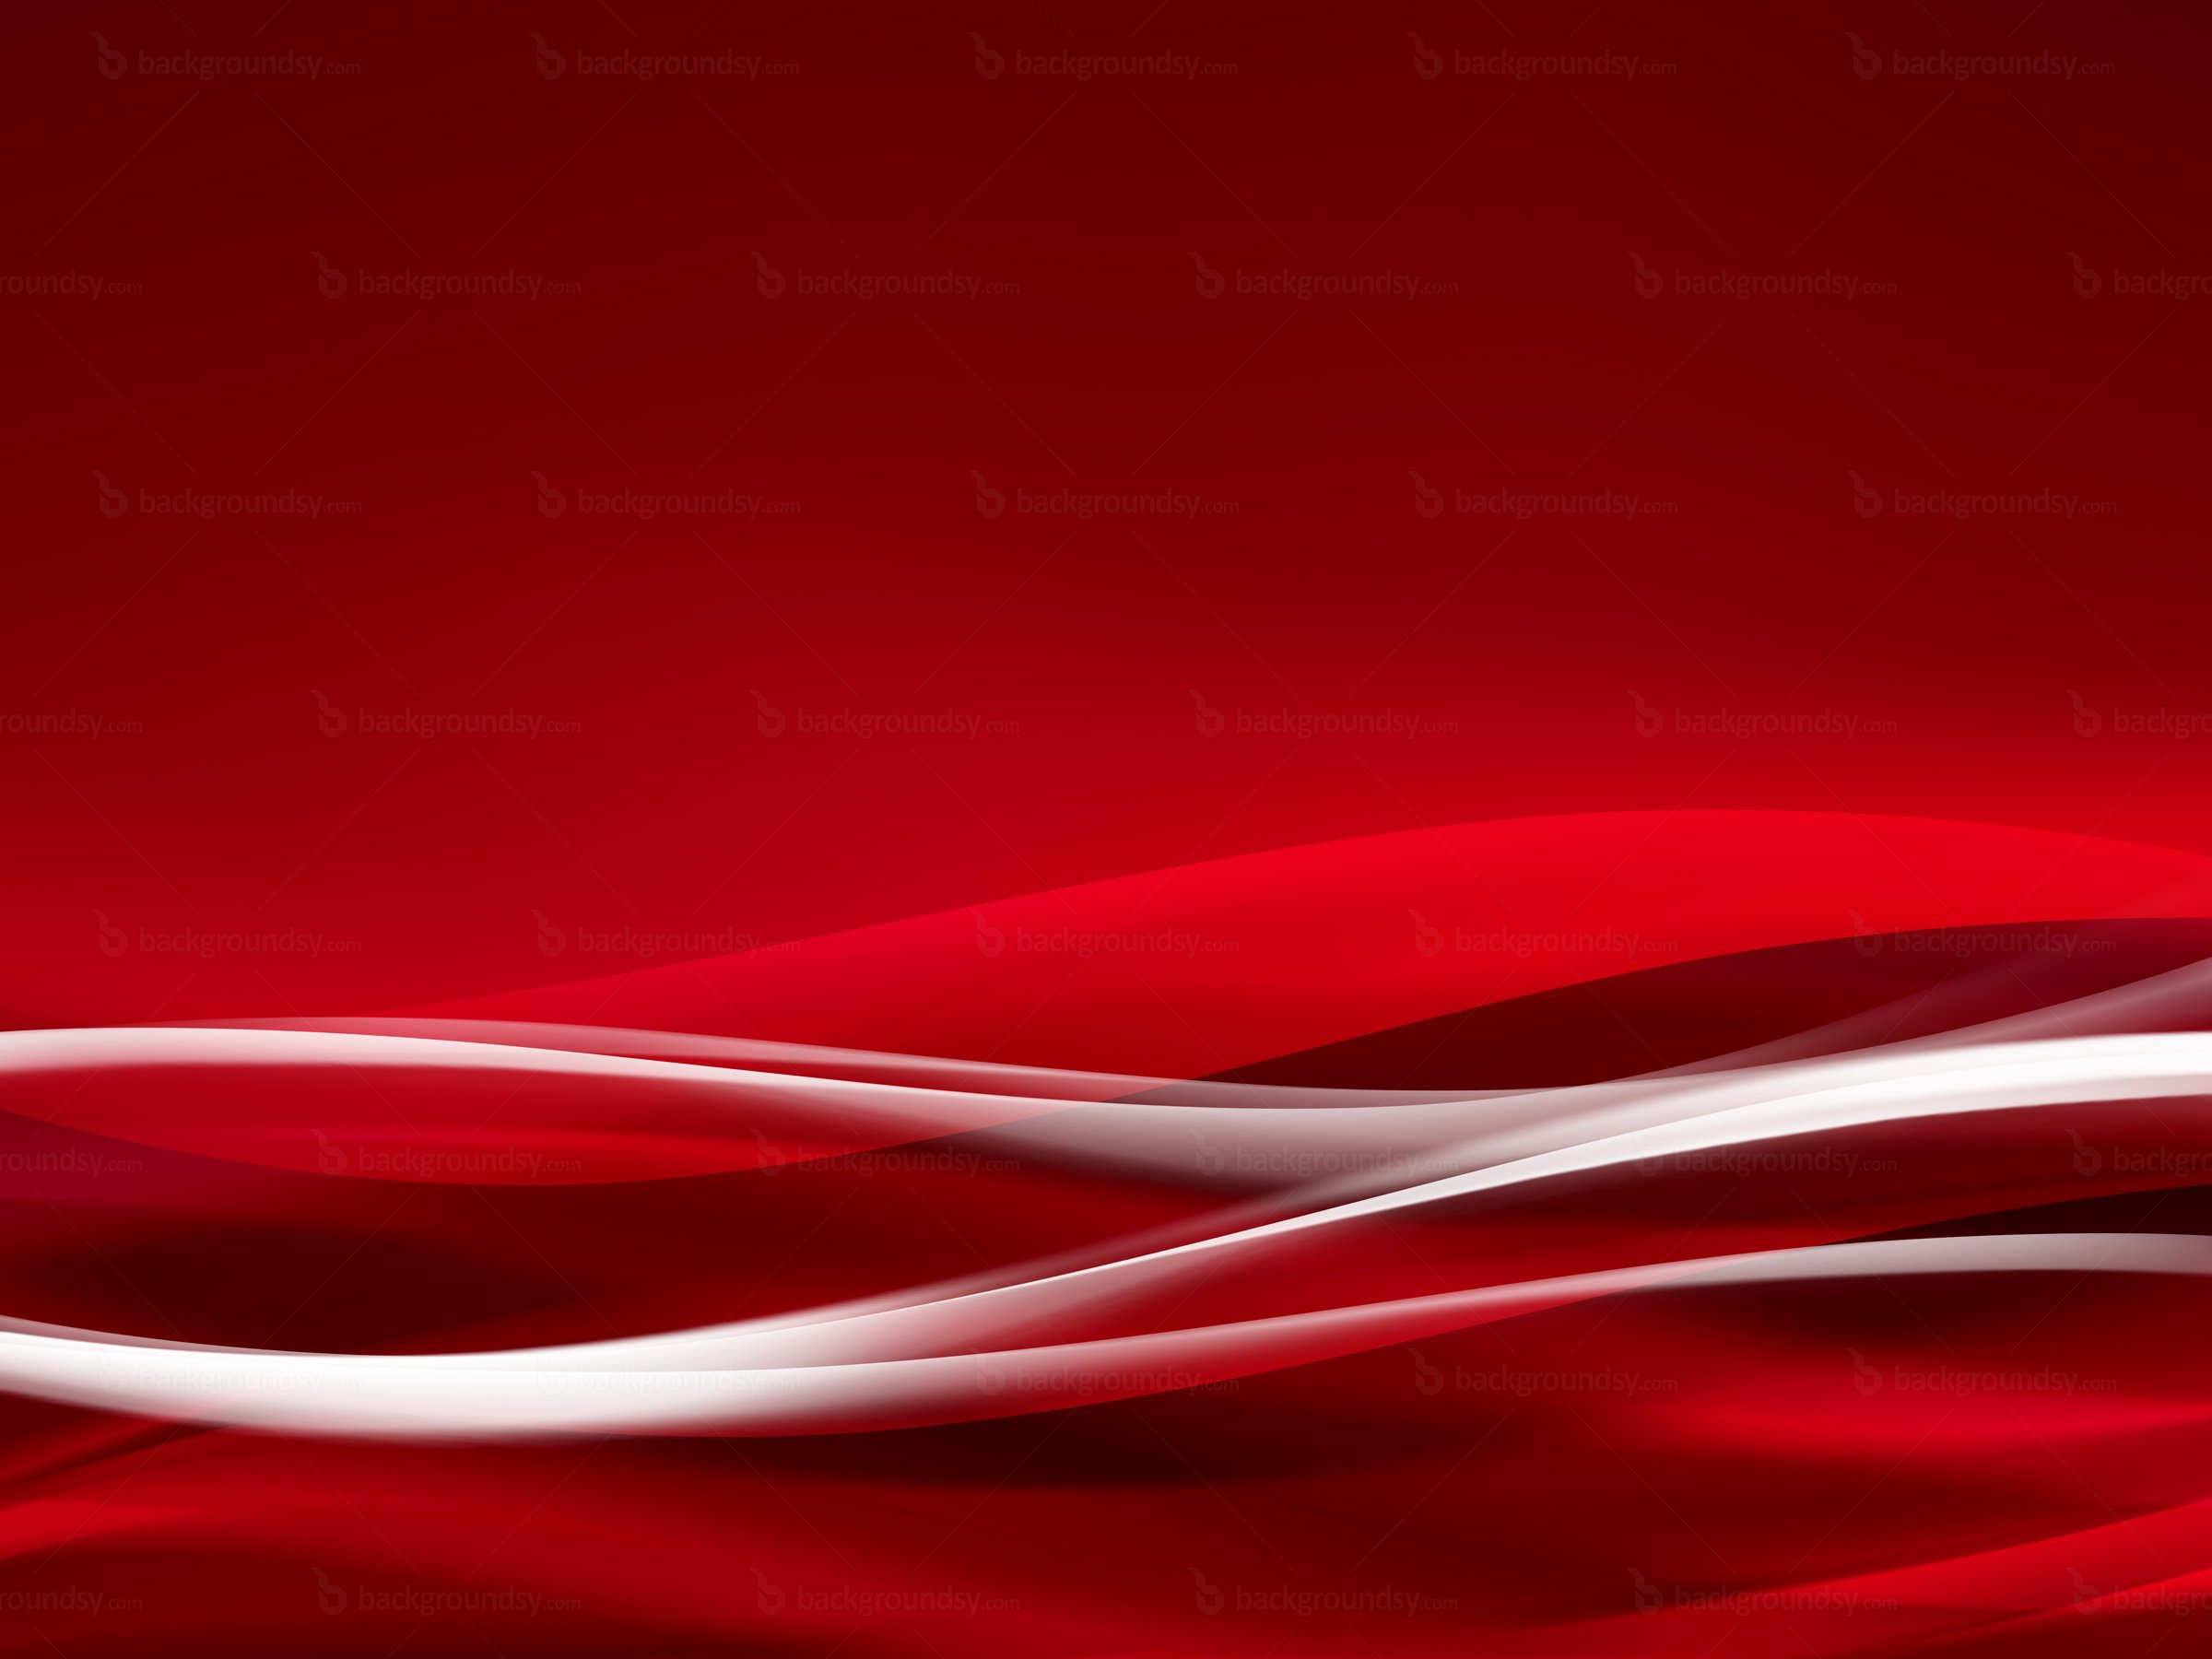 Red Digital Background Designs Background Spanduk Related